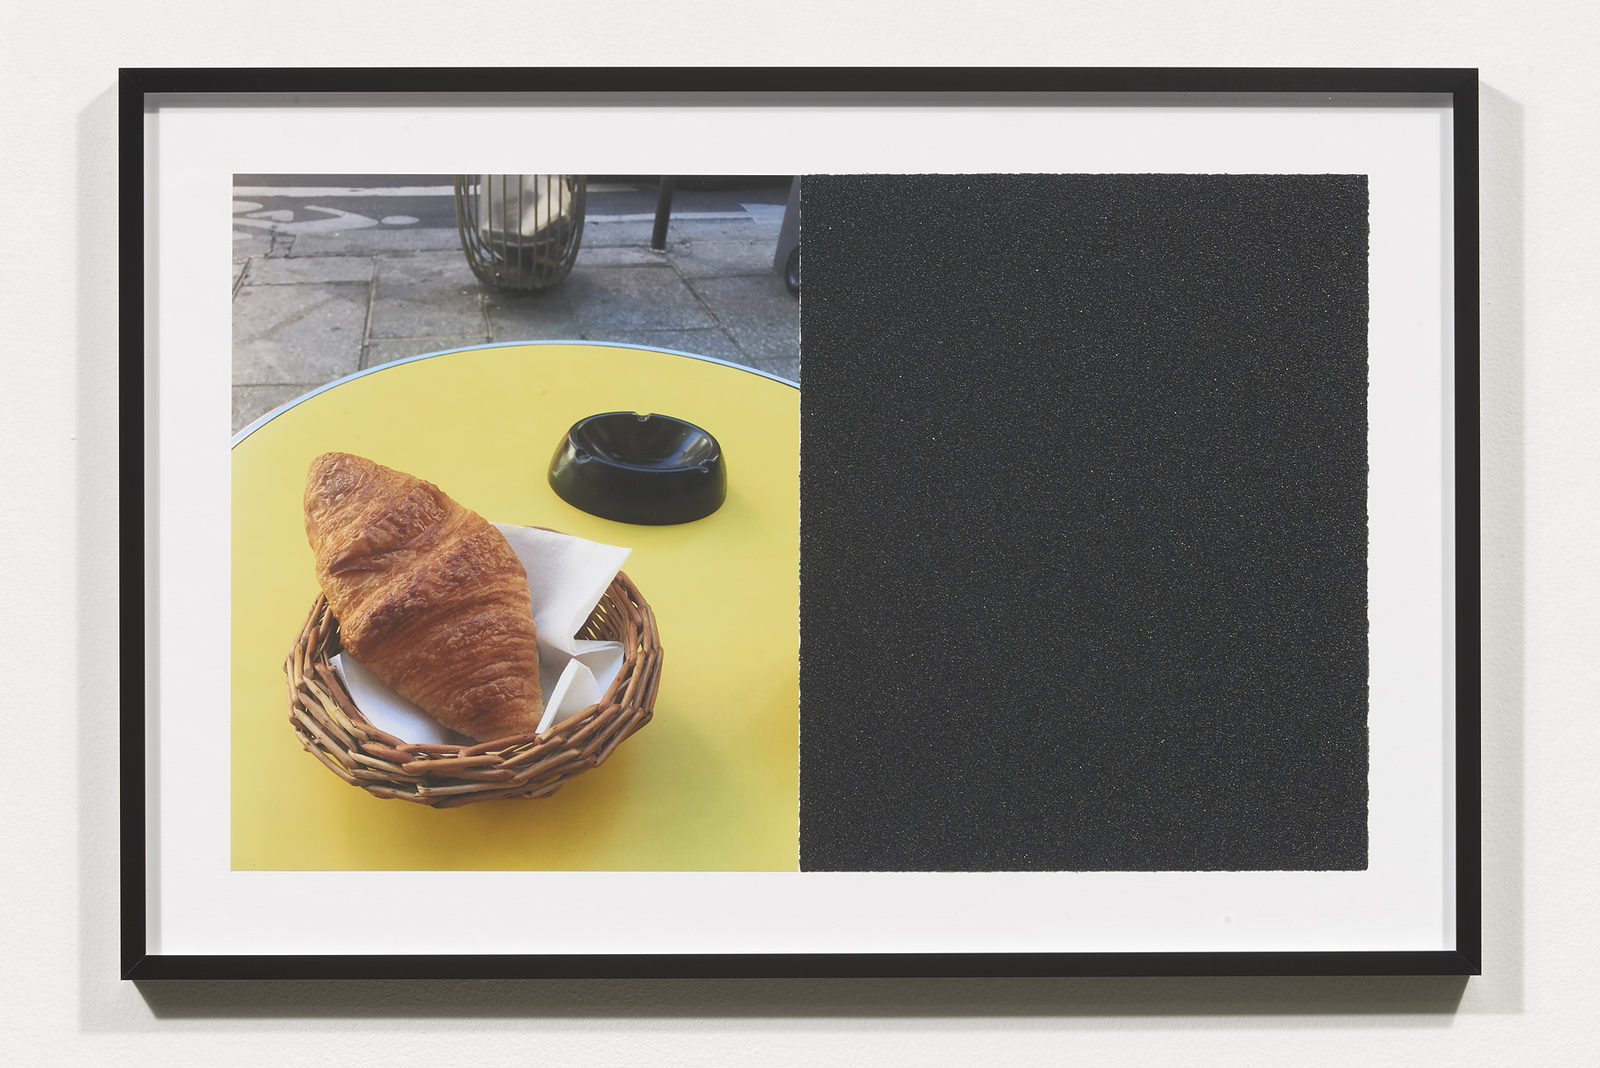 Wermers_Croissants & Architecture #18, 2016_C-print, sandpaper sheet, framed_14 3_8 x 21 1_2 in_NW00059PG